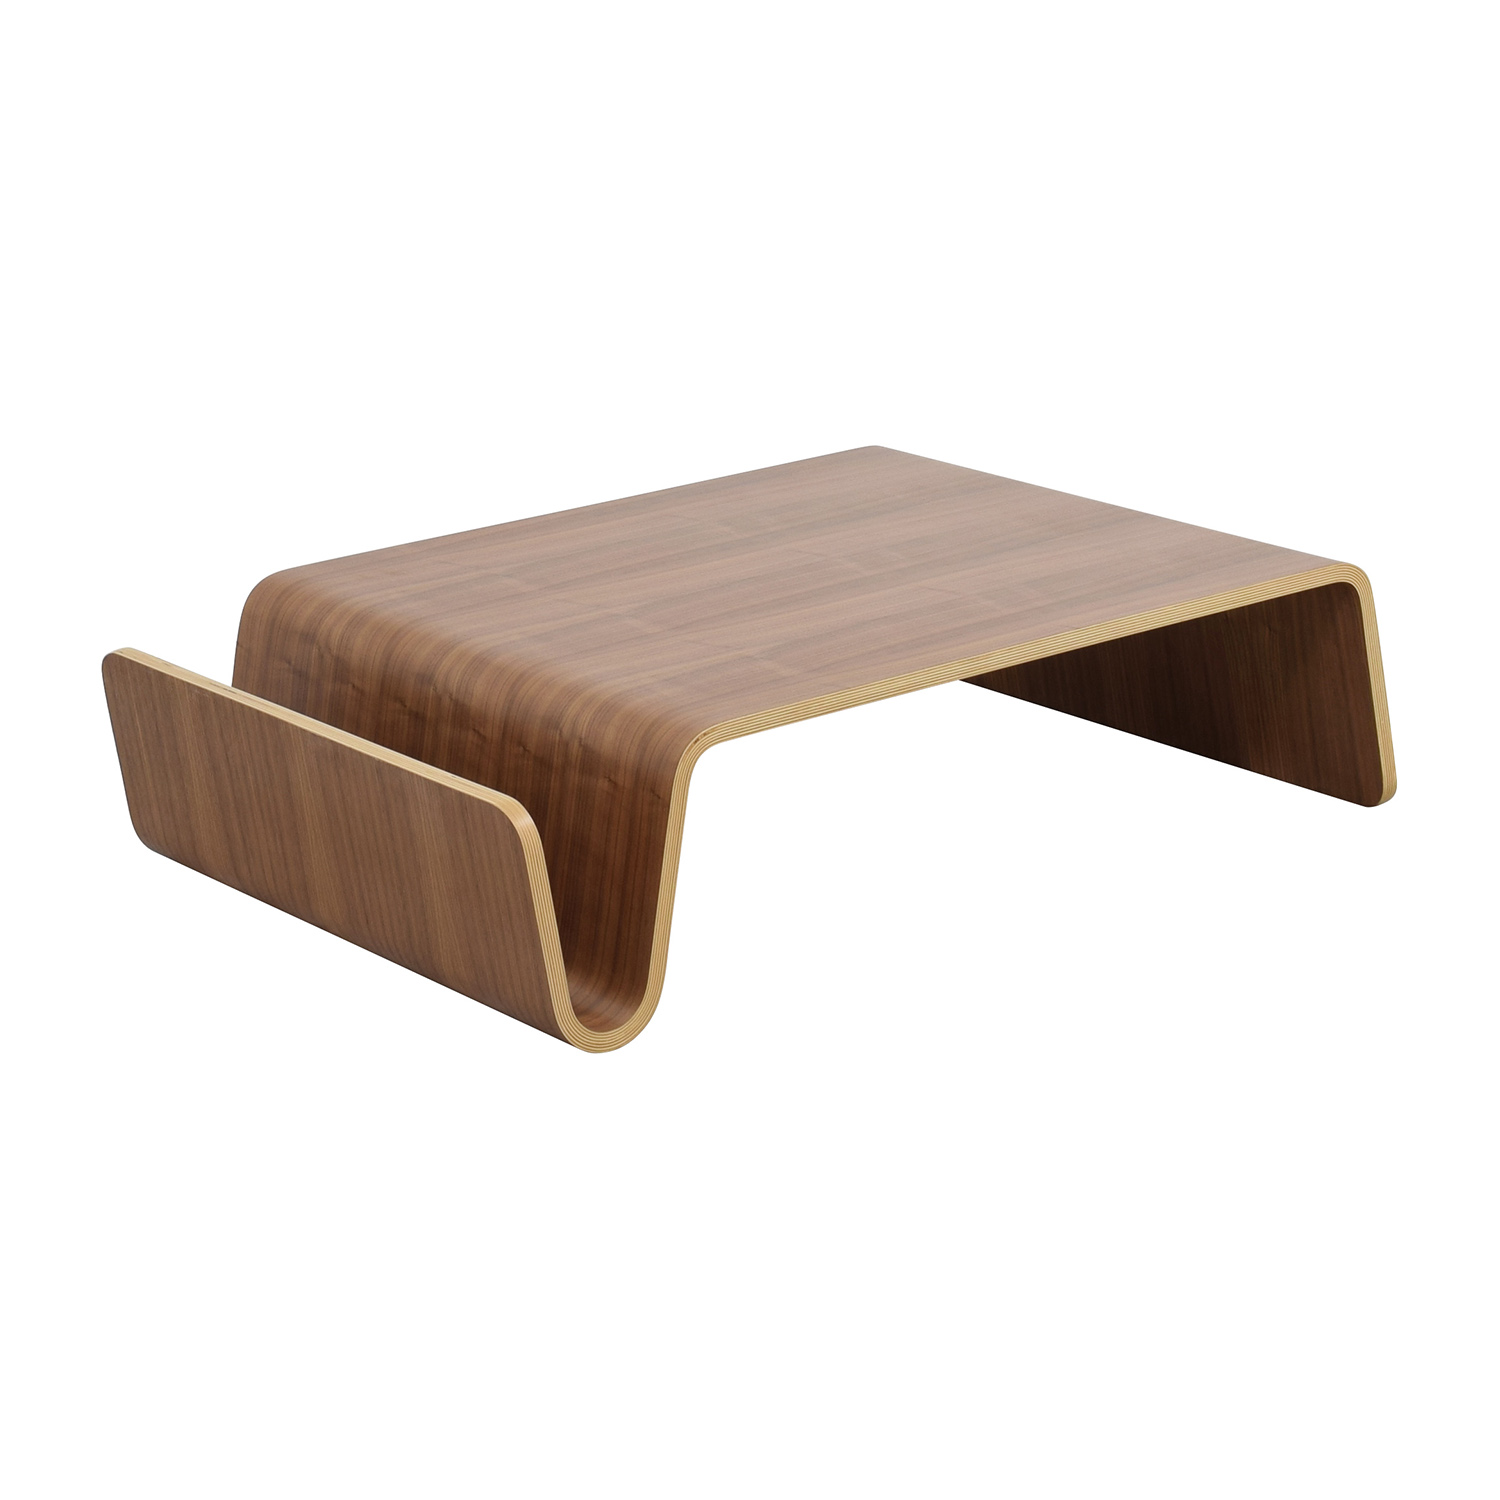 69 off inmod inmod scando coffee table tables for In mod furniture